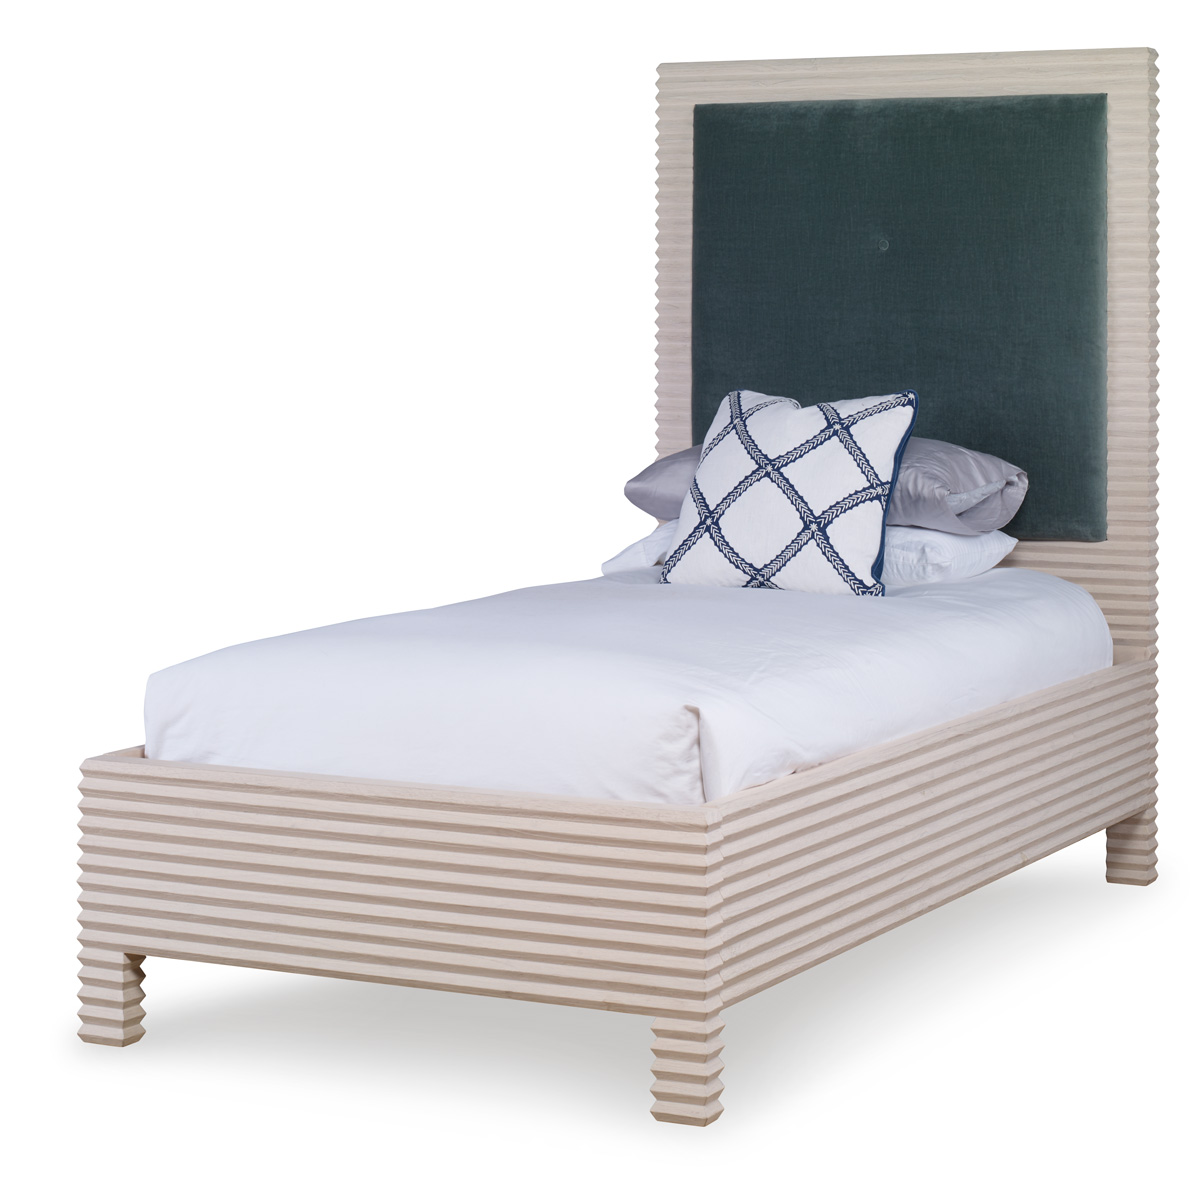 belmont-twin-bed-wrp-mrbrown